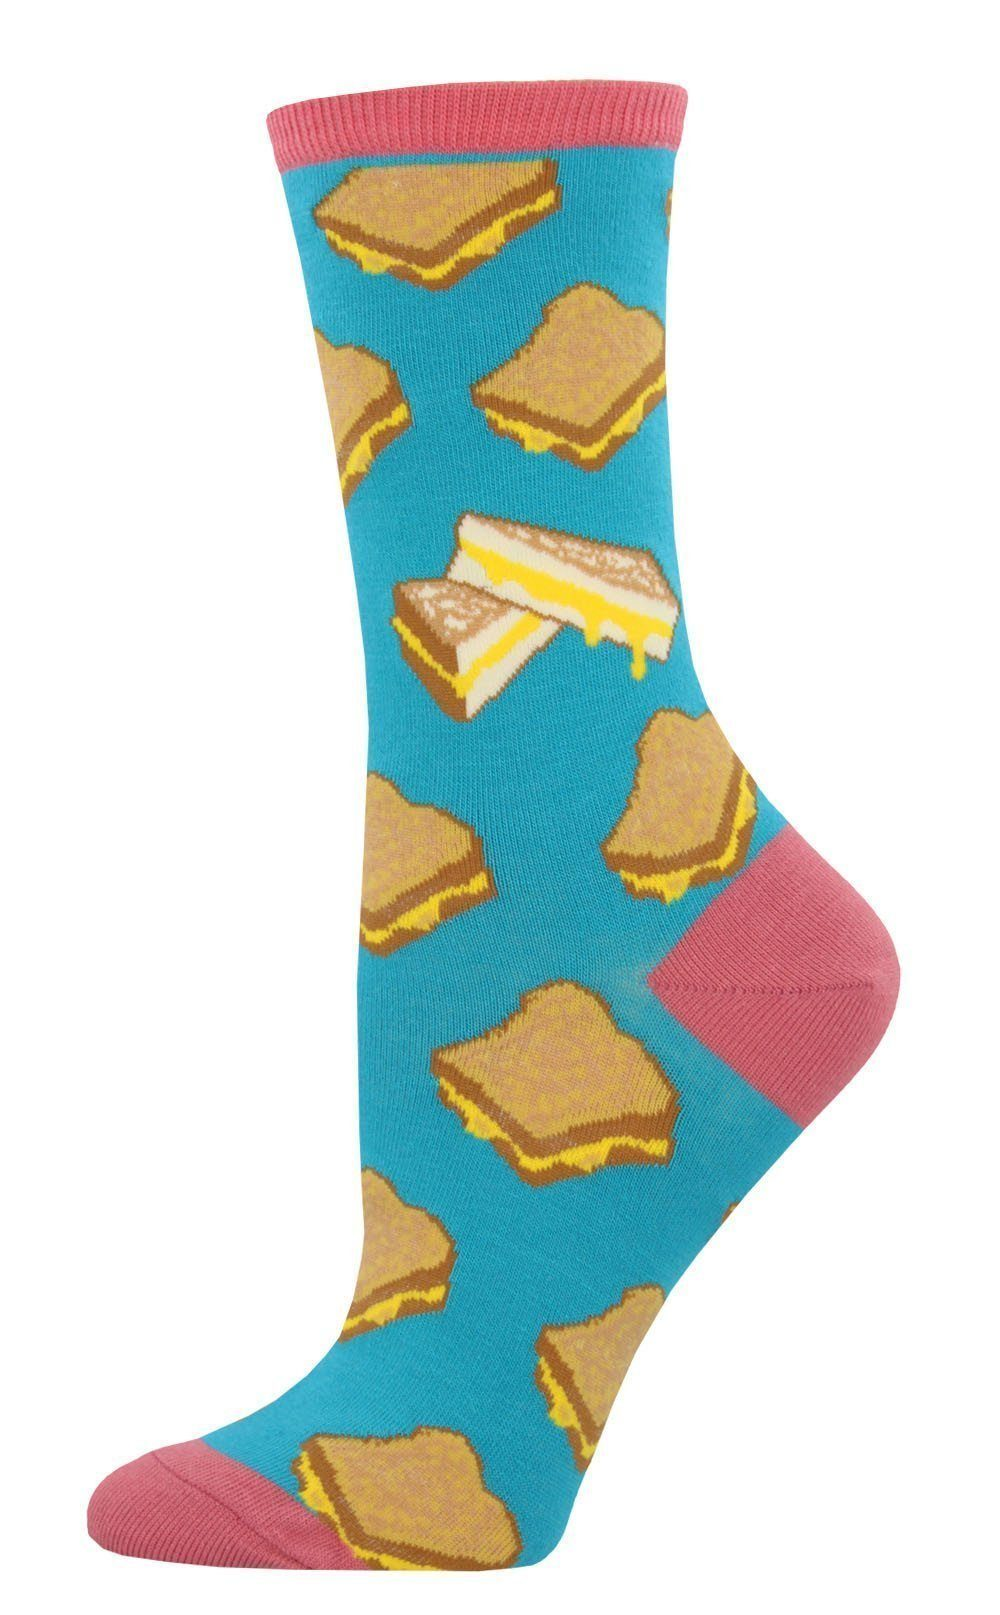 Socksmith - Grilled Cheese Crew Socks | Women's - Knock Your Socks Off